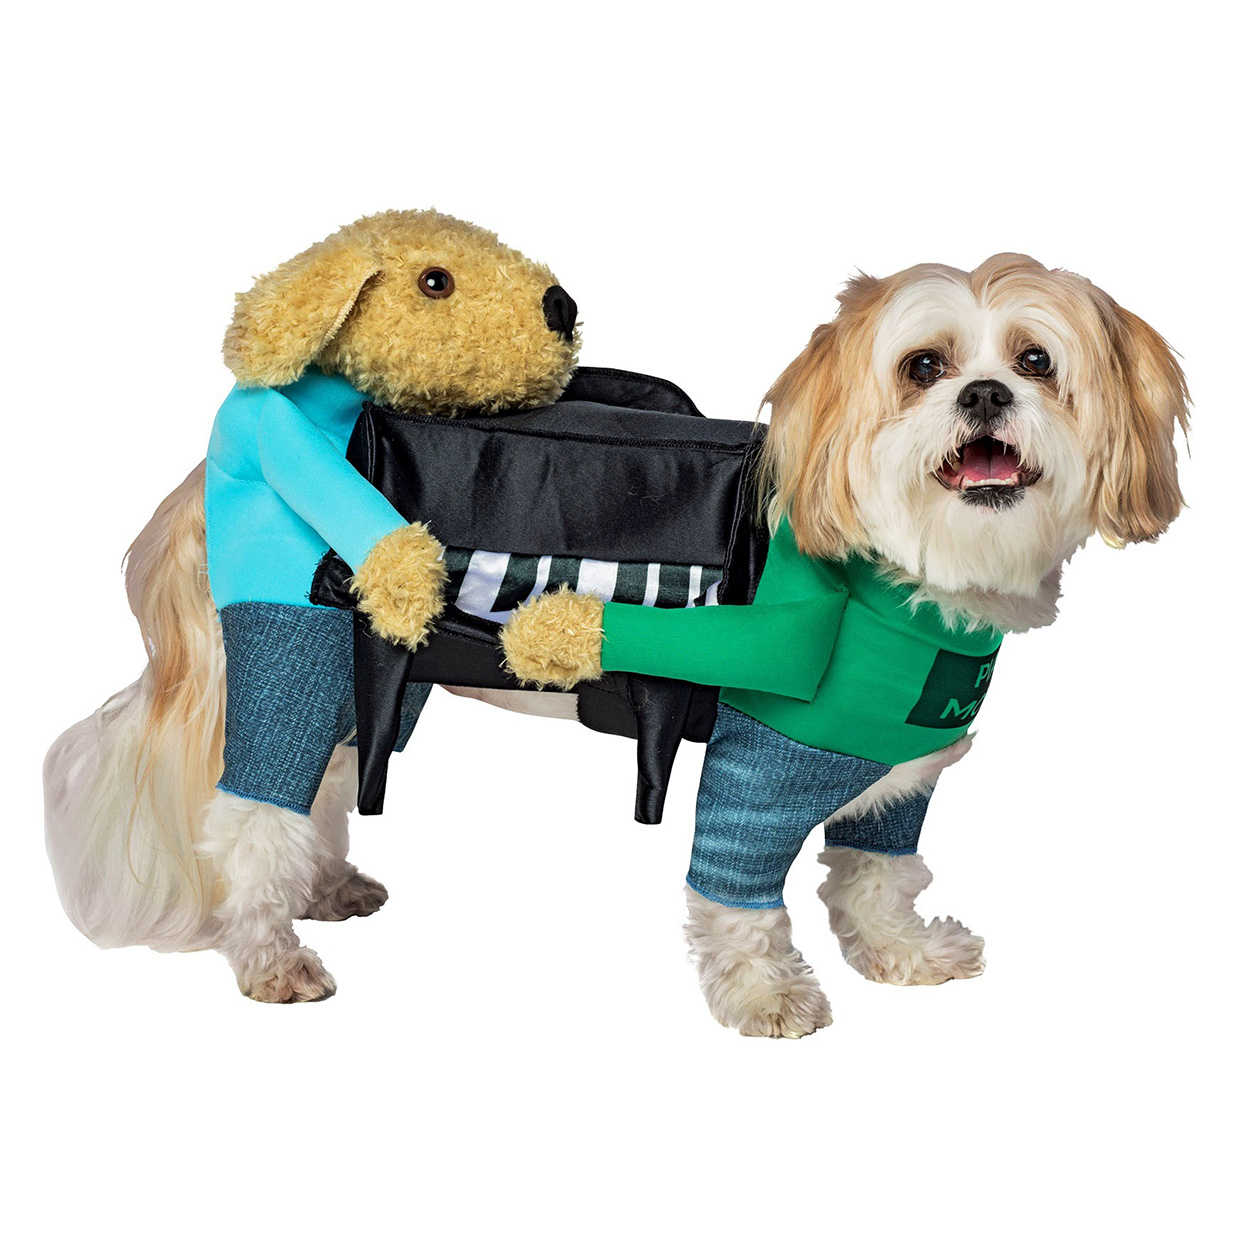 Dog wearing the Dogs Carrying Pianos Pet Costume on a white background